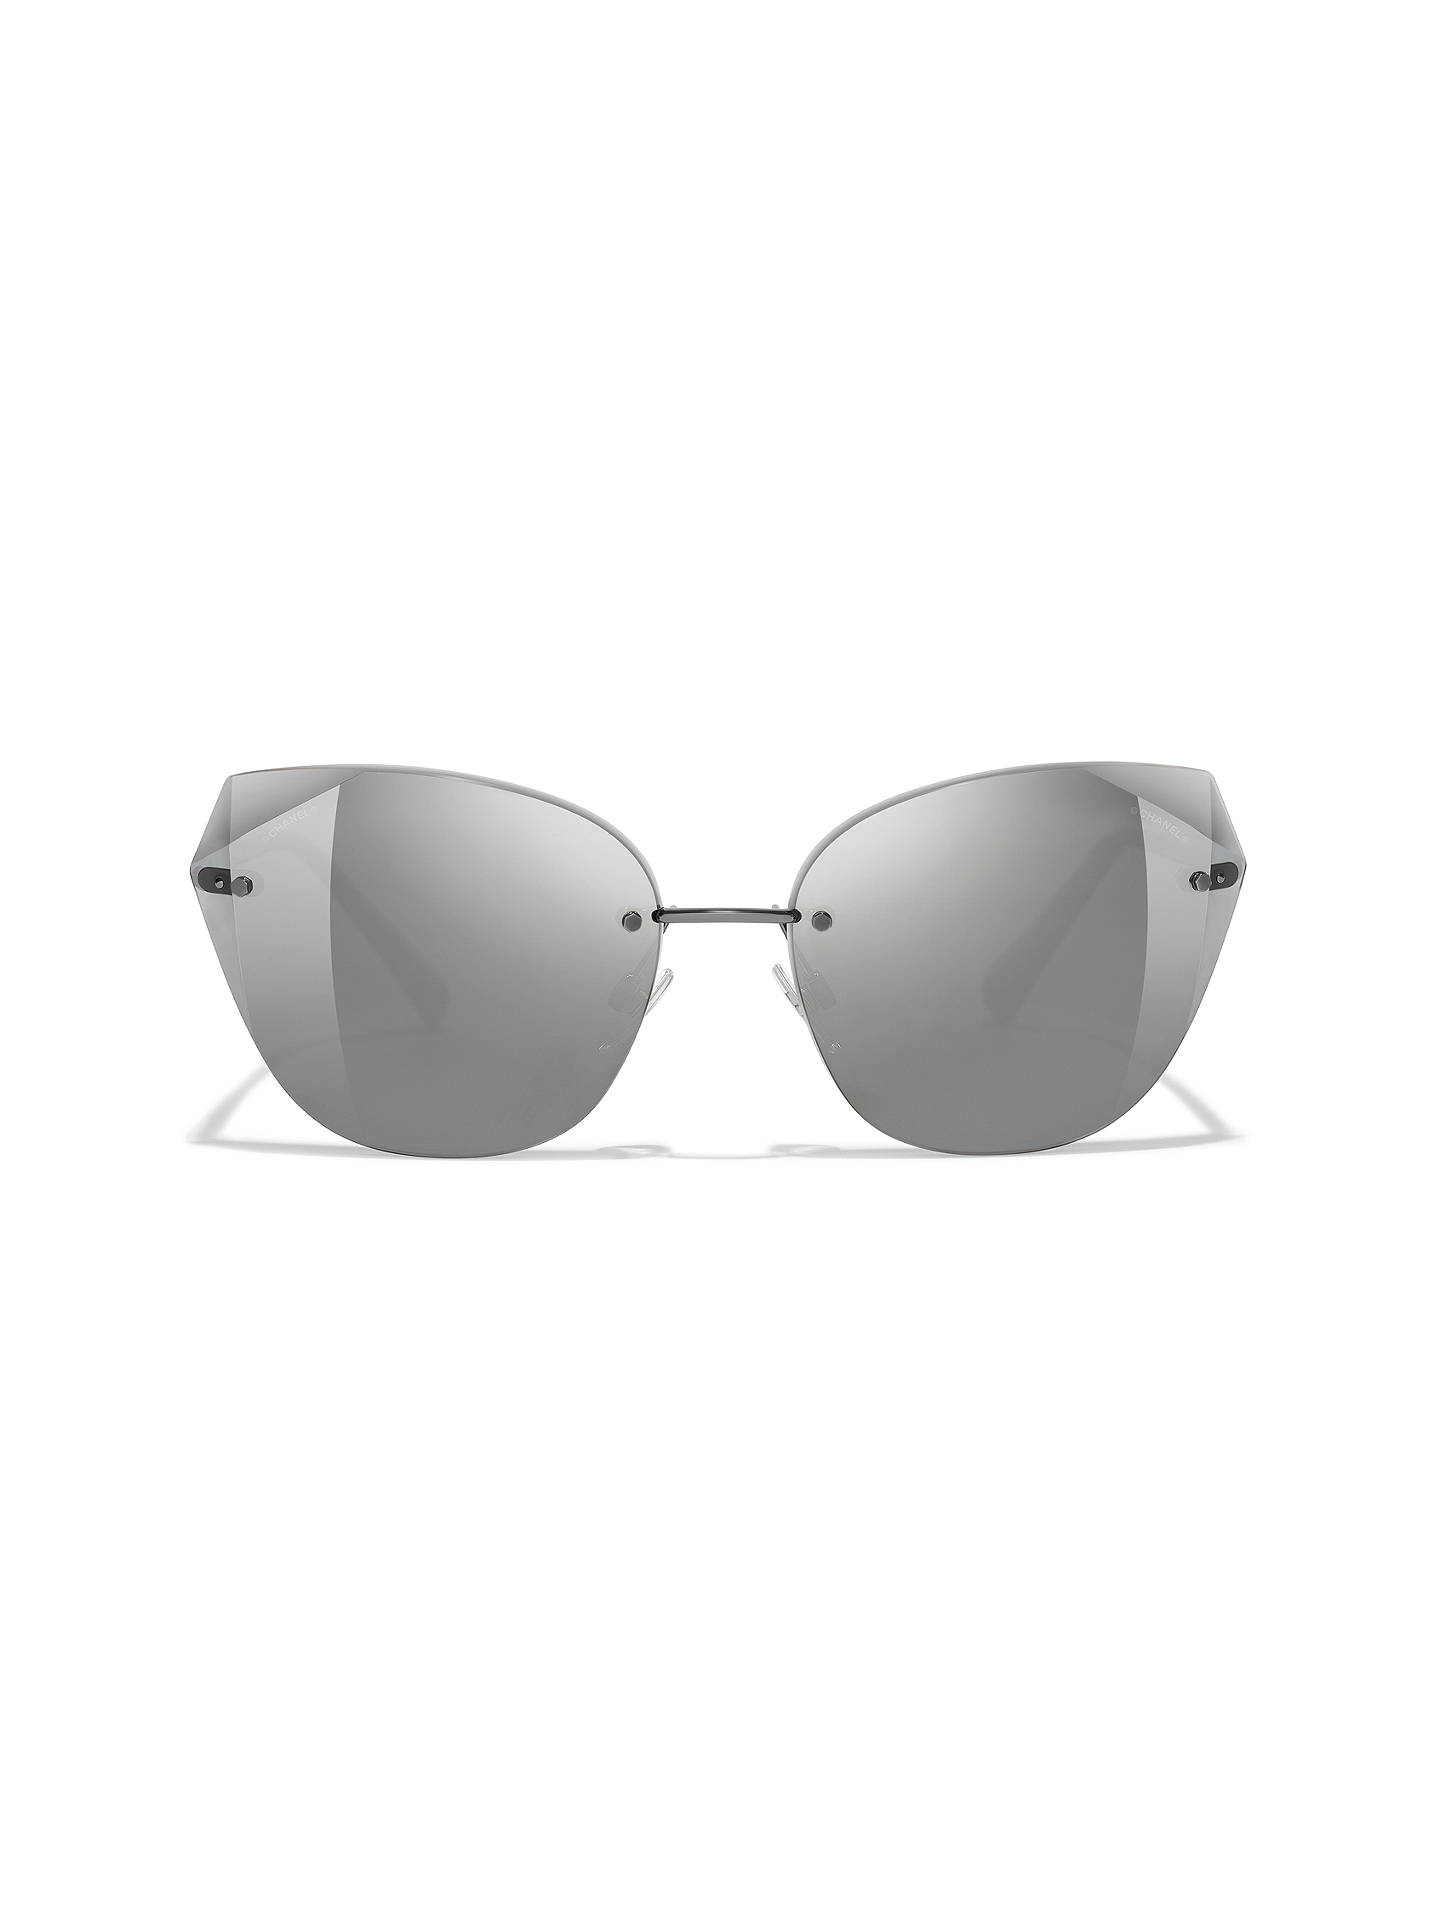 BuyCHANEL Cat Eye Sunglasses CH4237 Grey/Mirror Silver Online at johnlewis.com